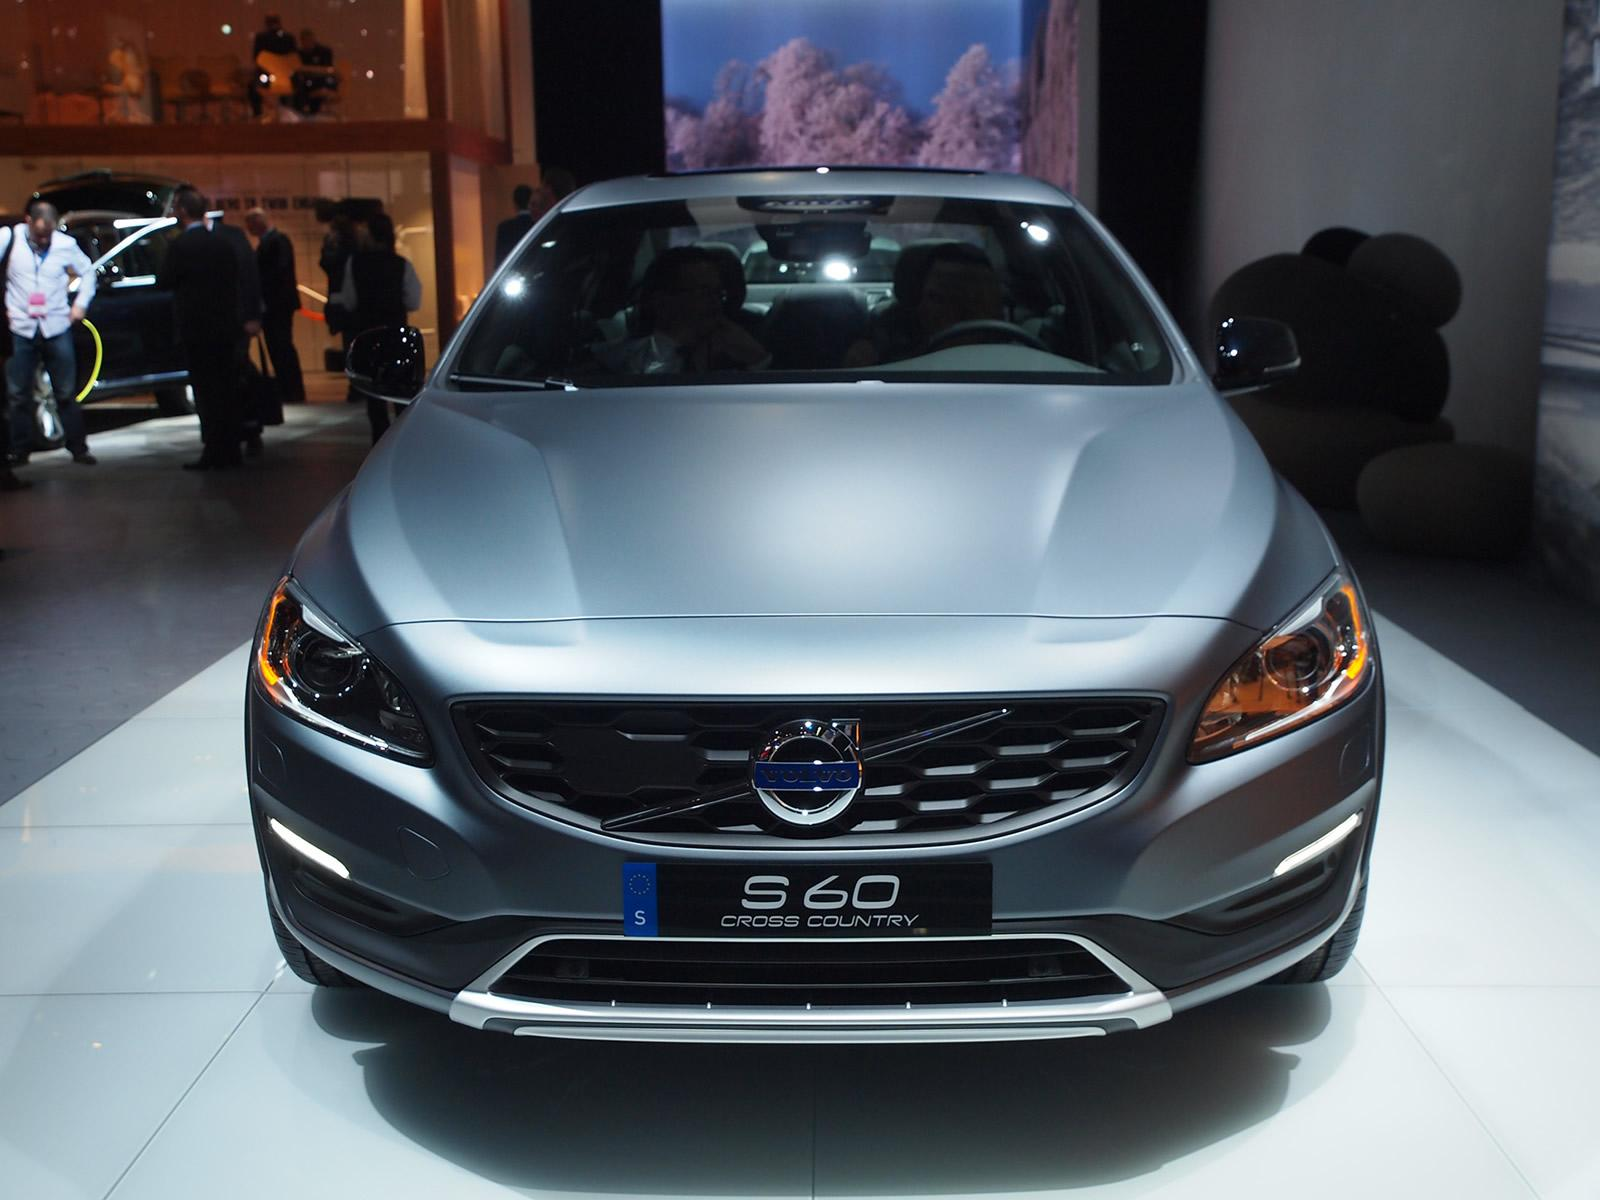 Volvo S60 Cross Country: anteprima al Salone di Detroit 2015